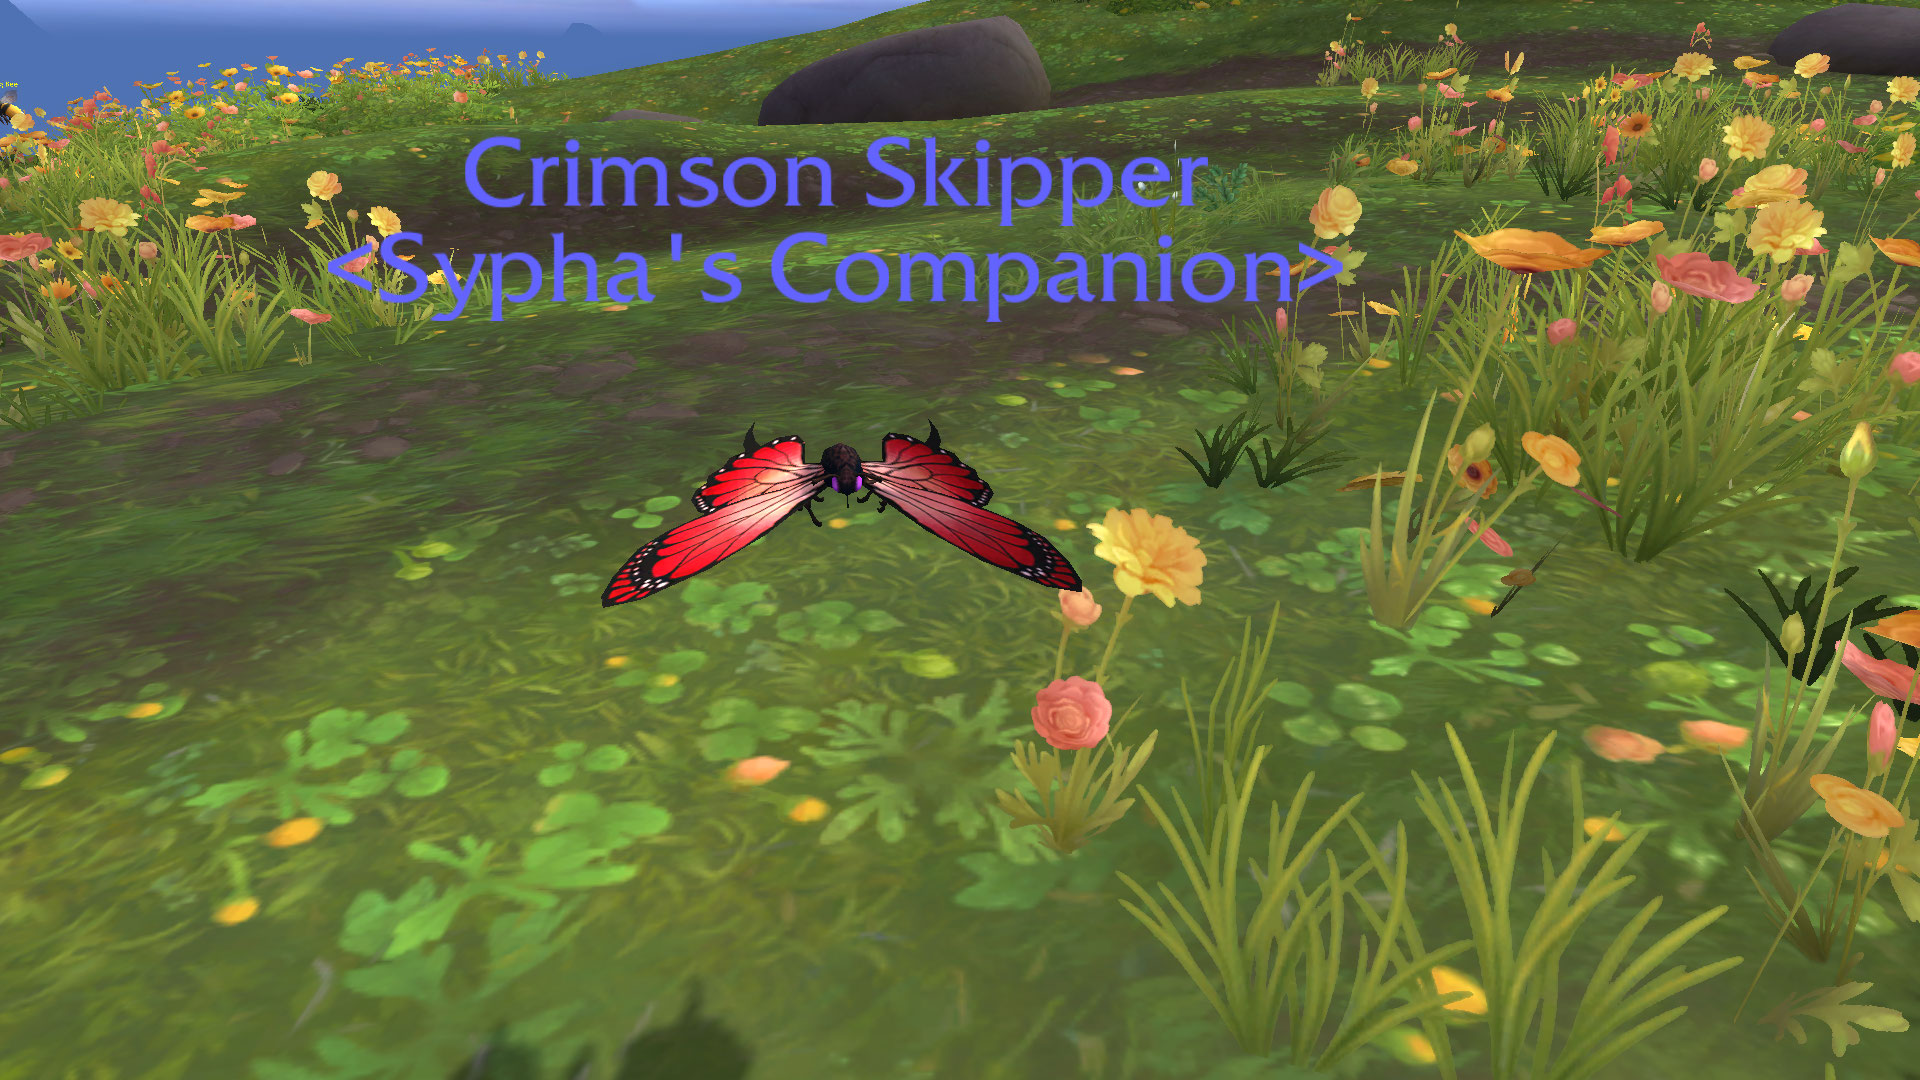 CrimsonSkipper.jpg